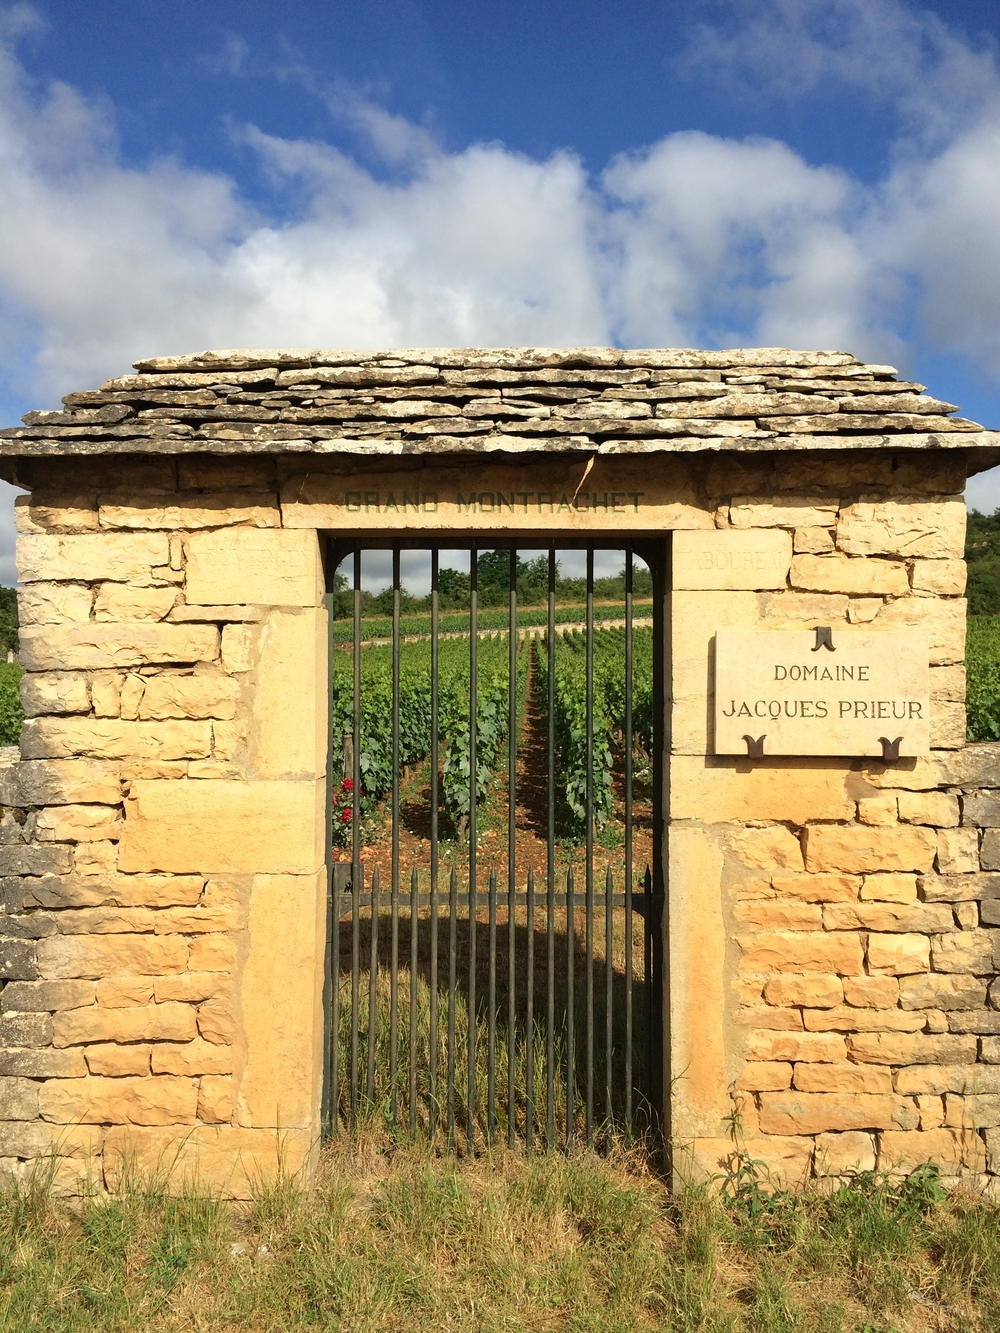 A short walk fromLaMaisond'Olivier Leflaive takes you through beautiful vineyards including legendary Montrachet